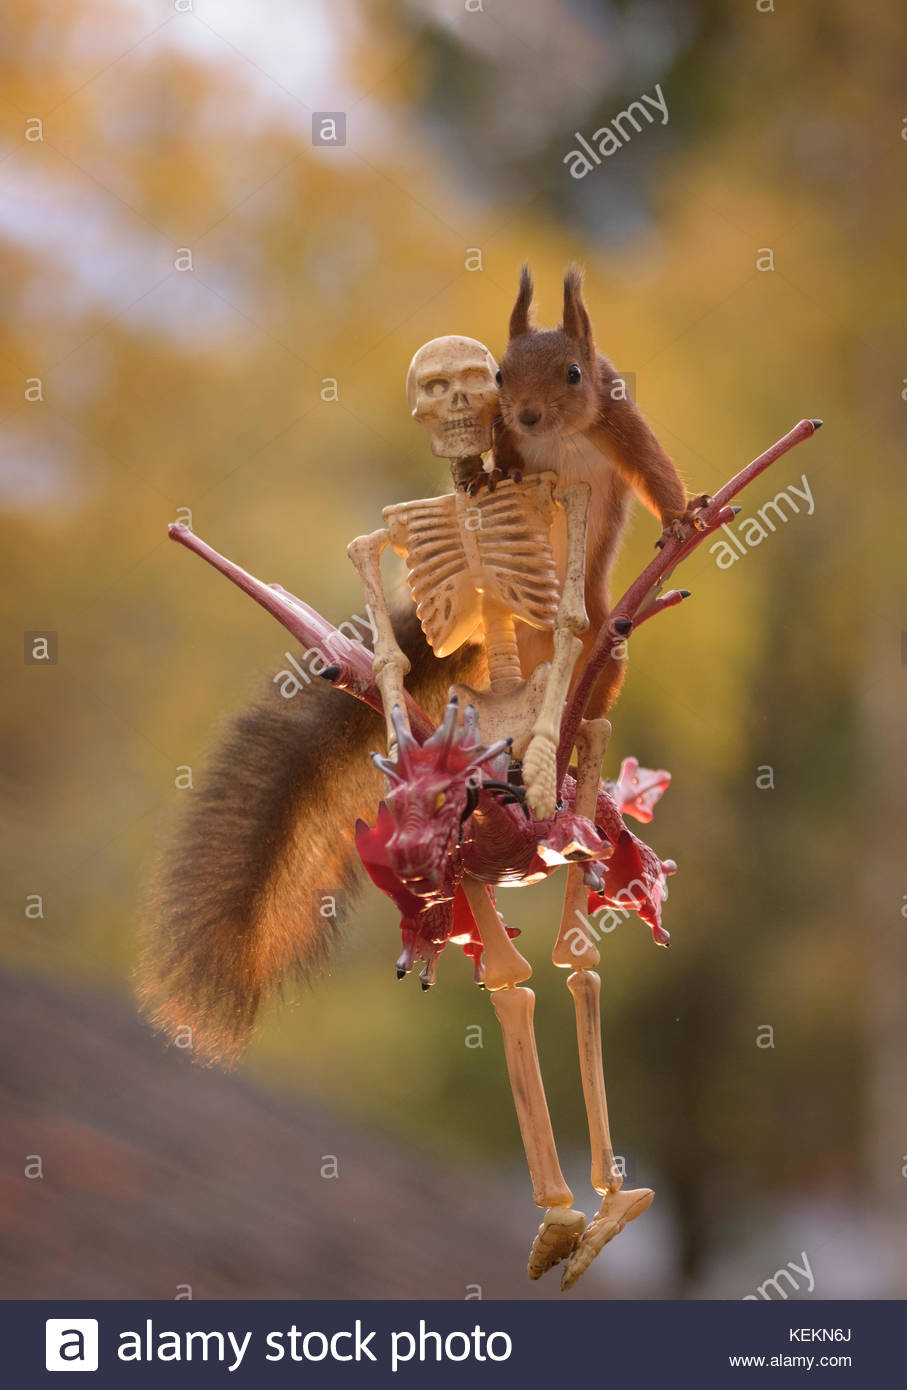 red-squirrel-and-a-skeleton-together-on-a-dragon-KEKN6J.jpg